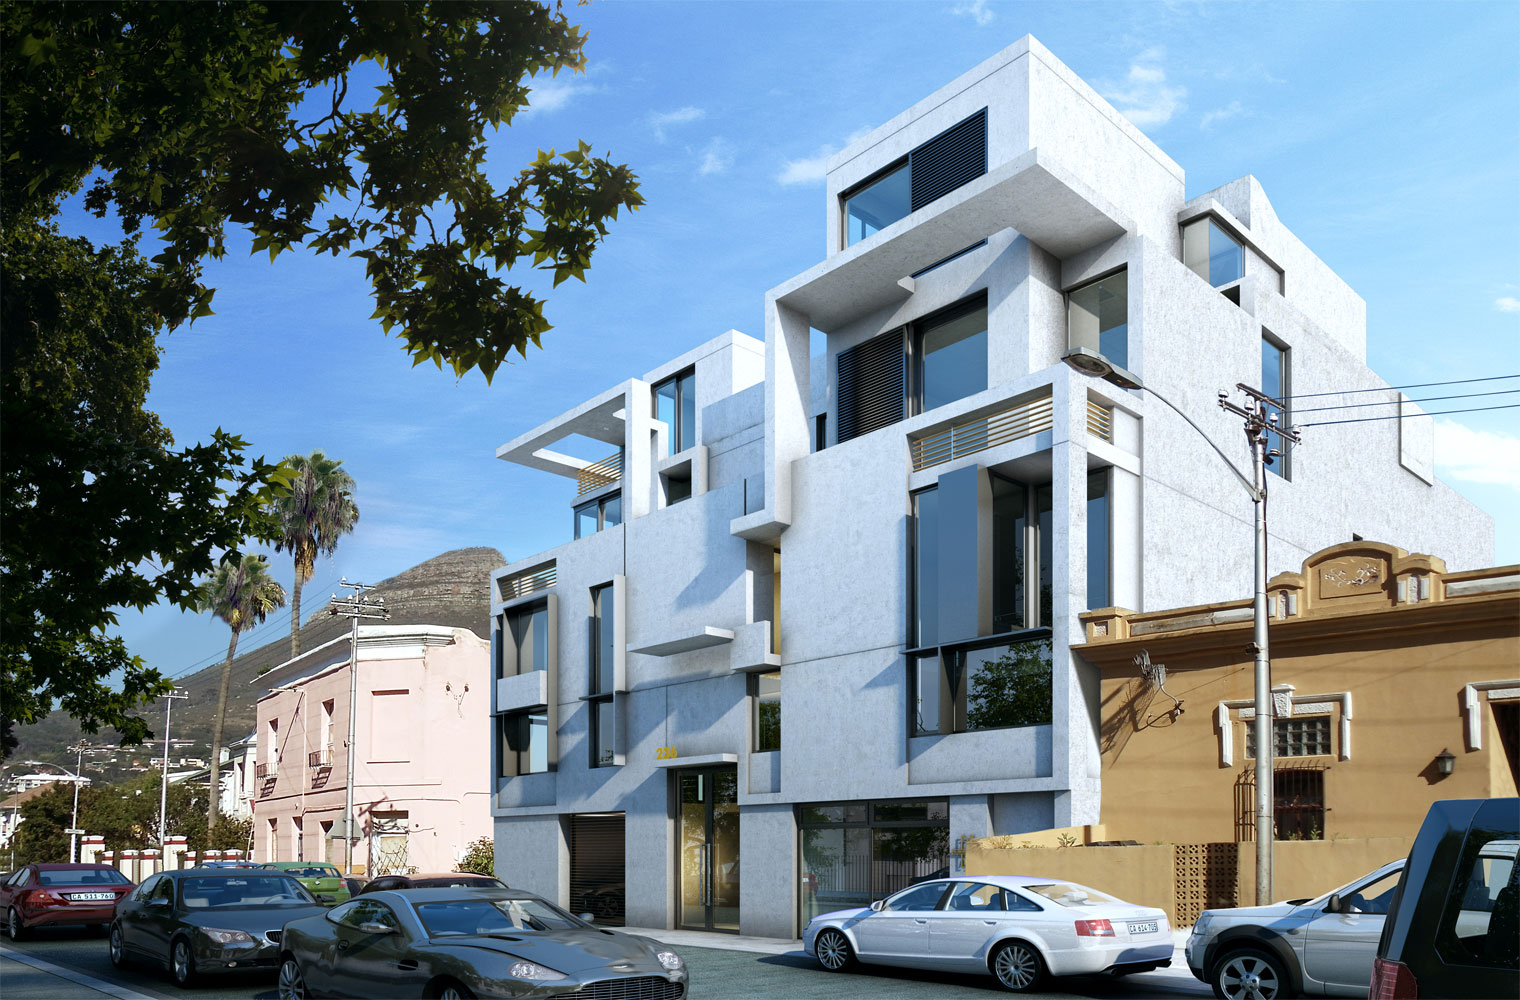 236 buitengragt street-artist impression looking west